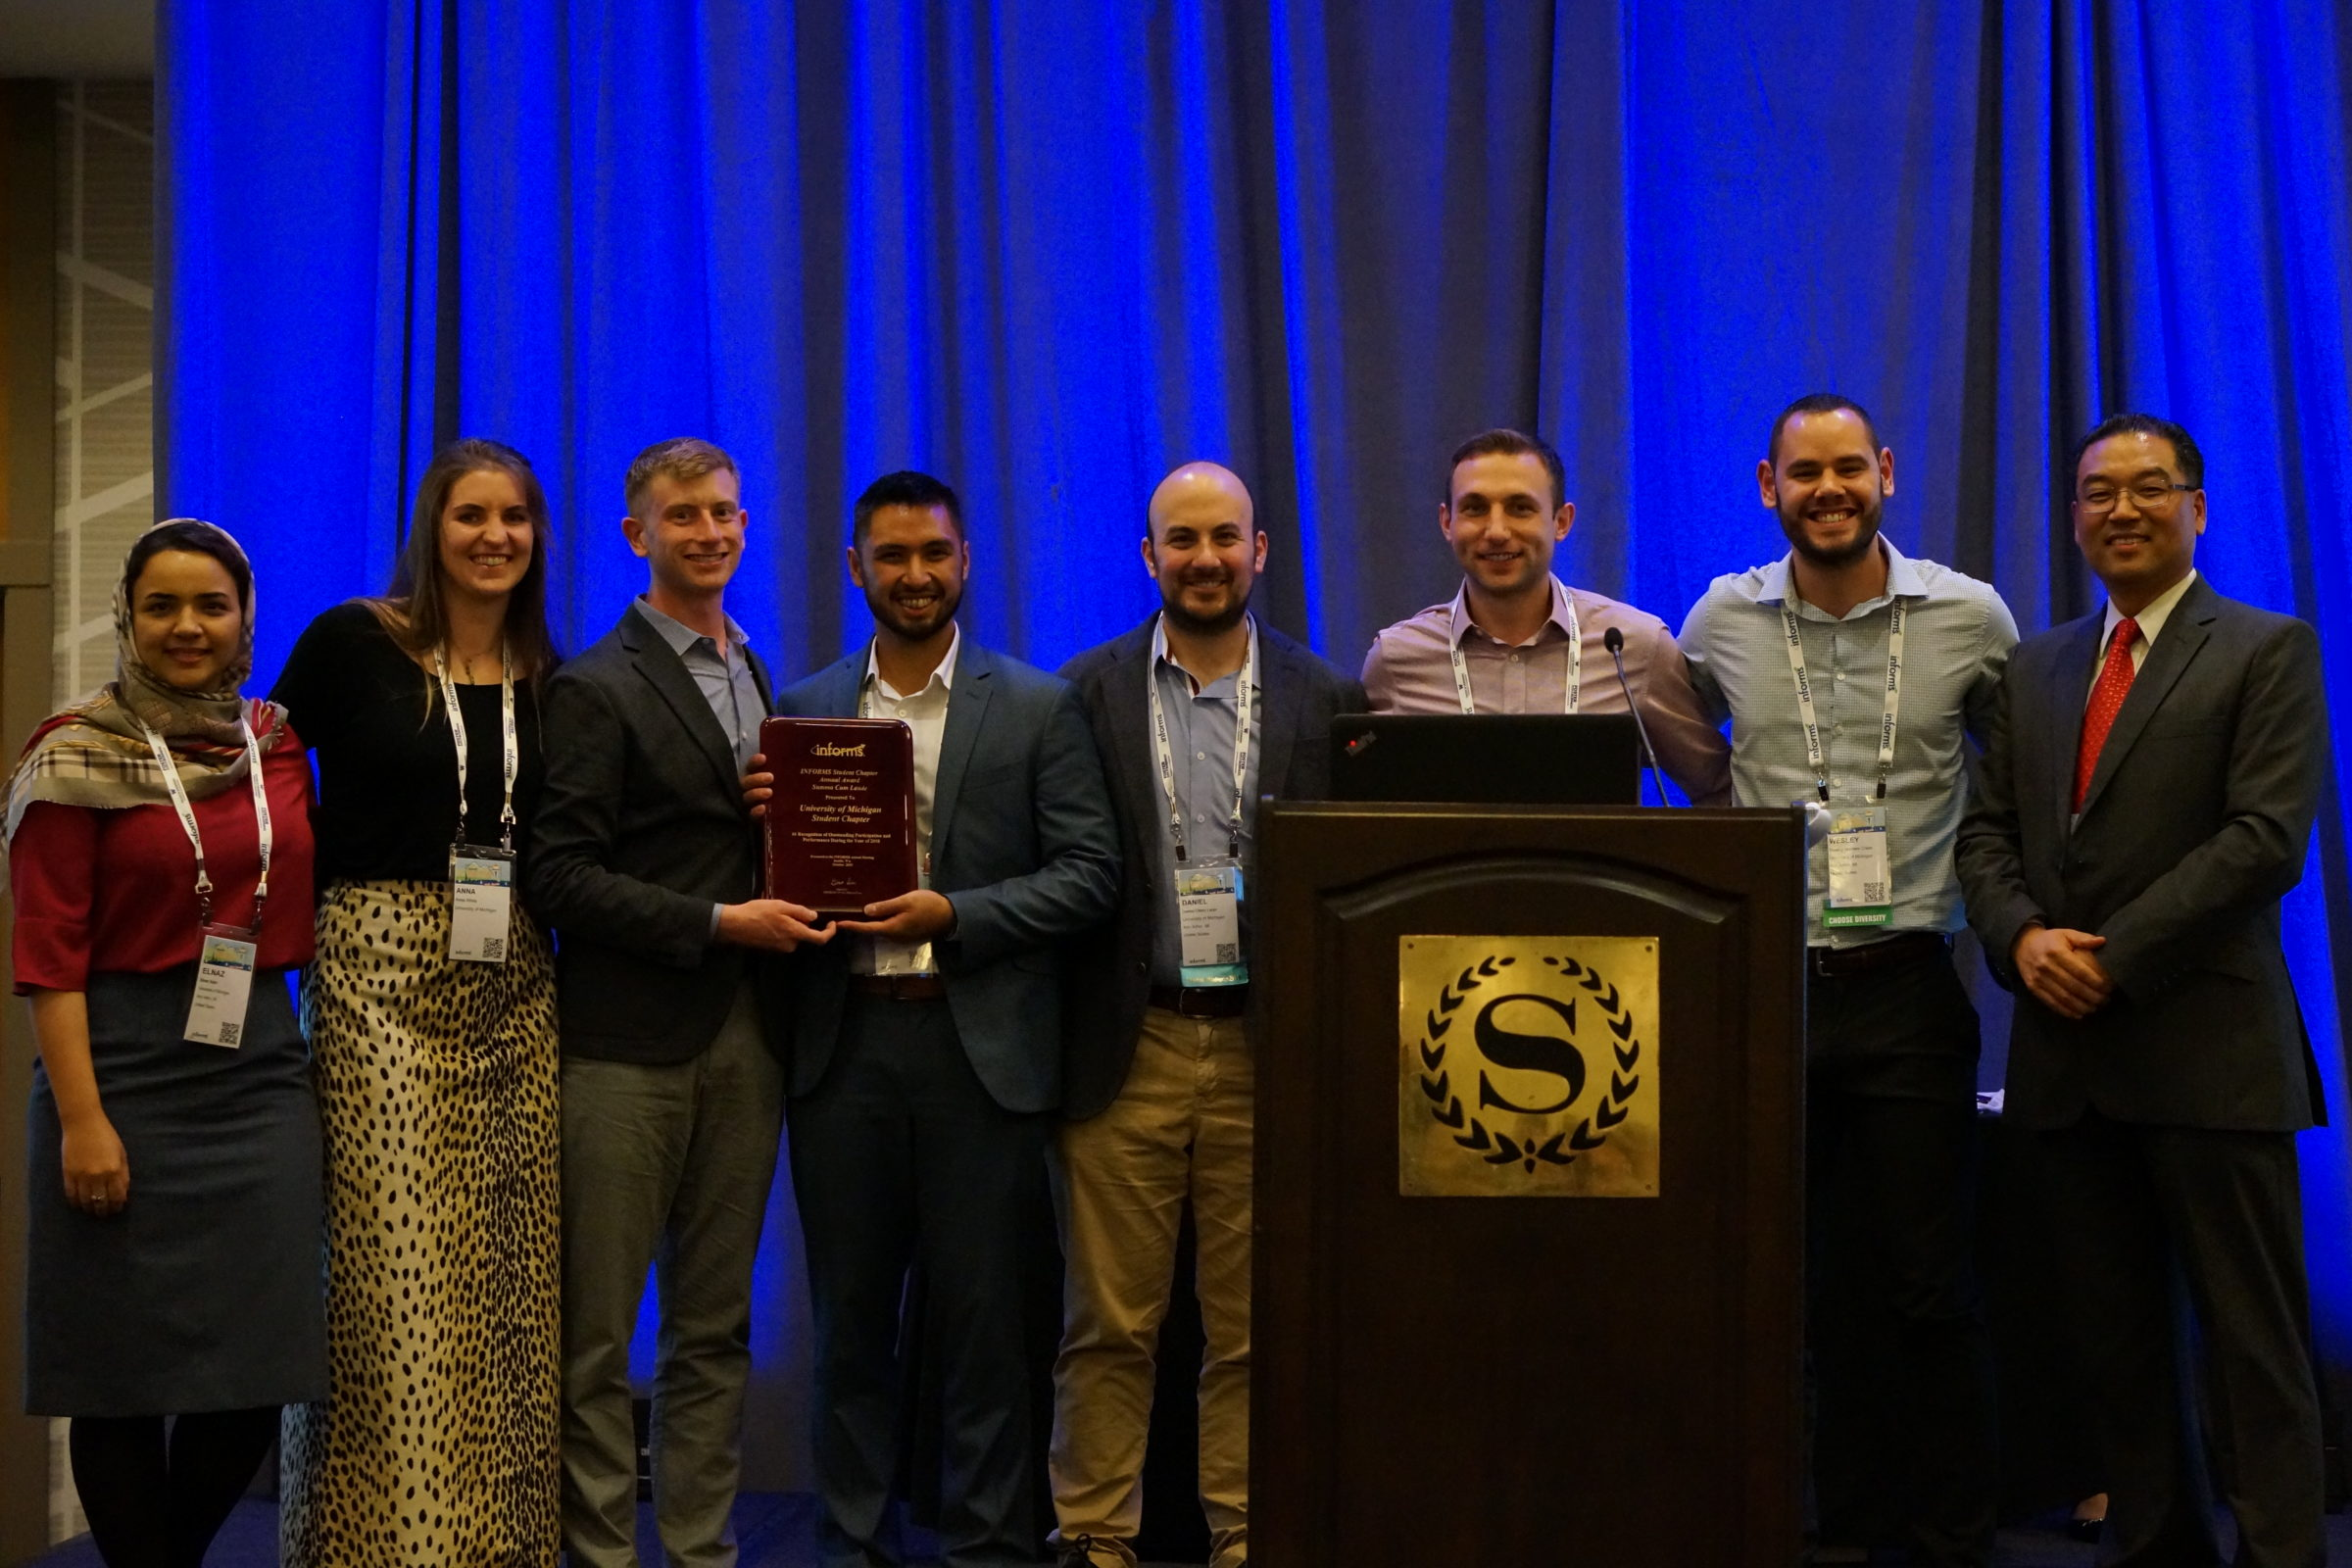 INFORMS Student Chapter at U-M members accept their award on stage at the INFORMS Annual Meeting in Seattle.